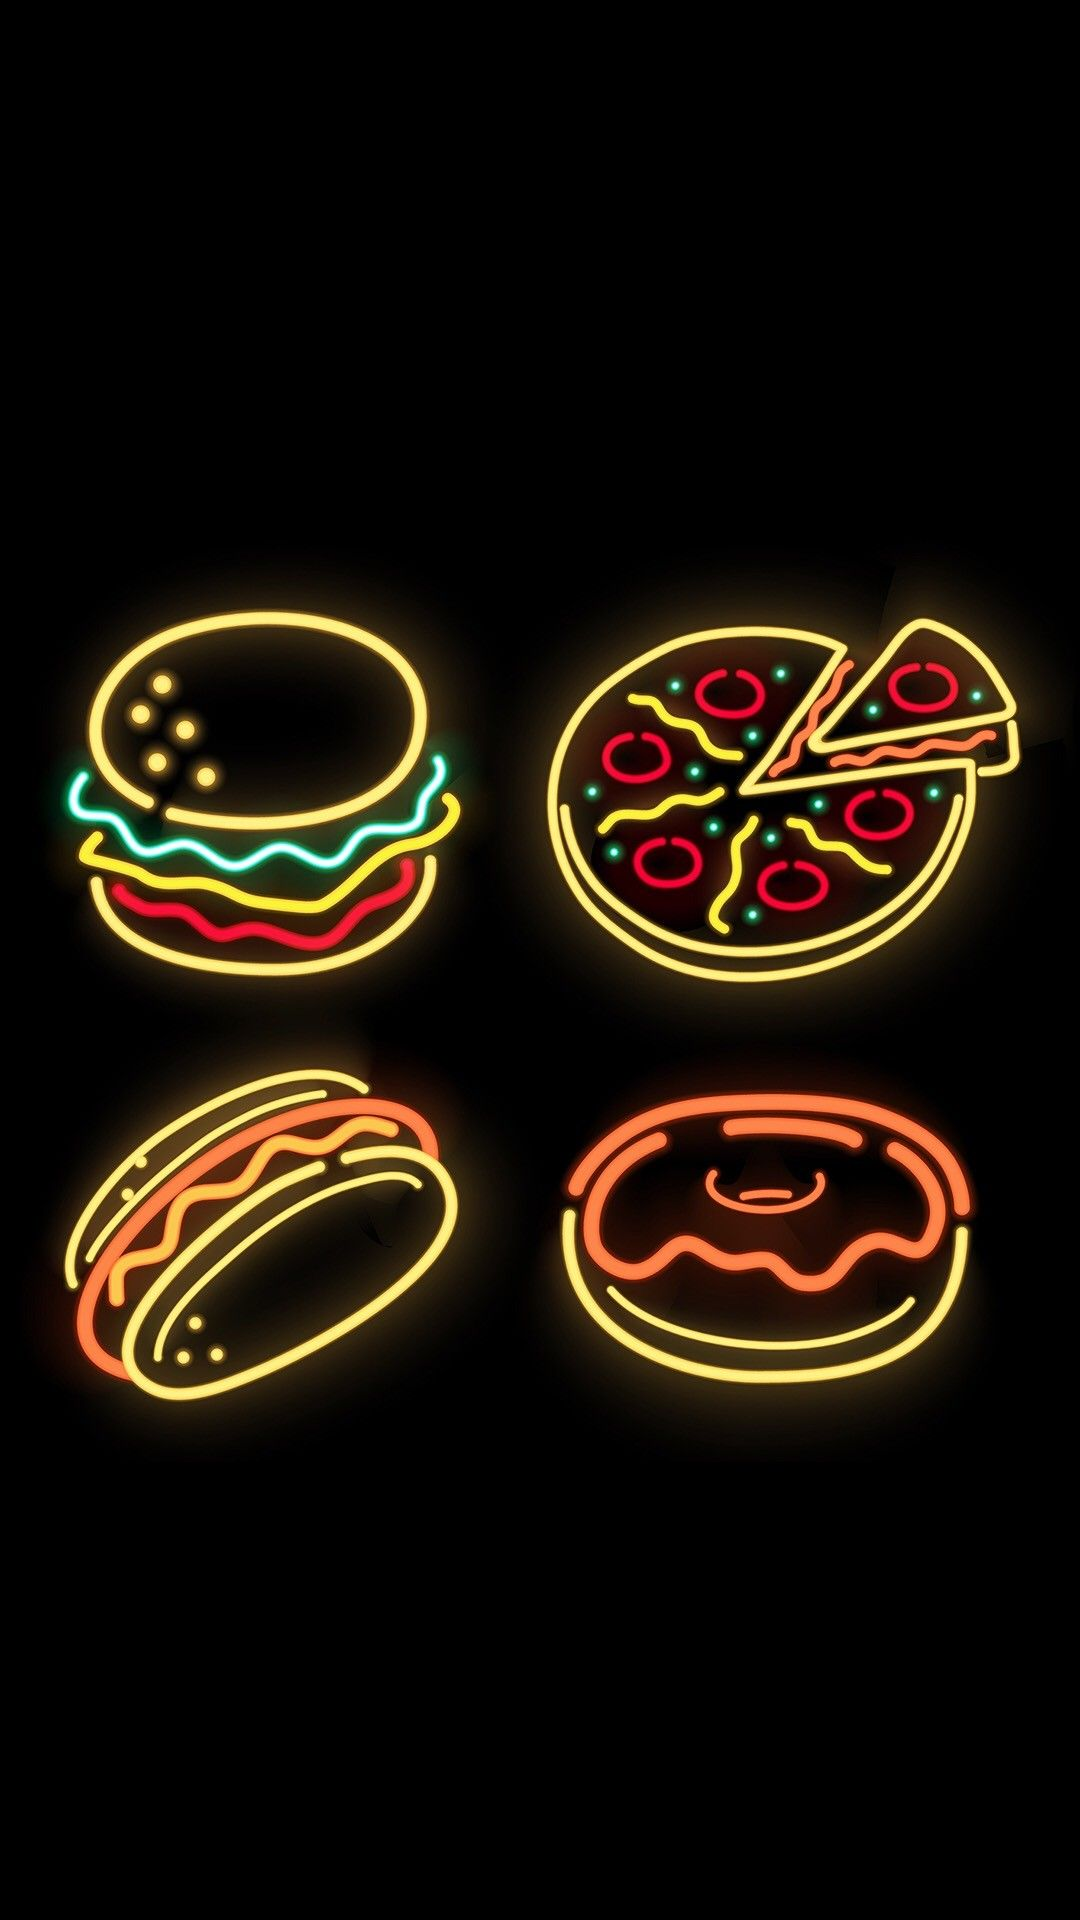 1080x1920 food photography in 2019 neon signs, neon wallpaper